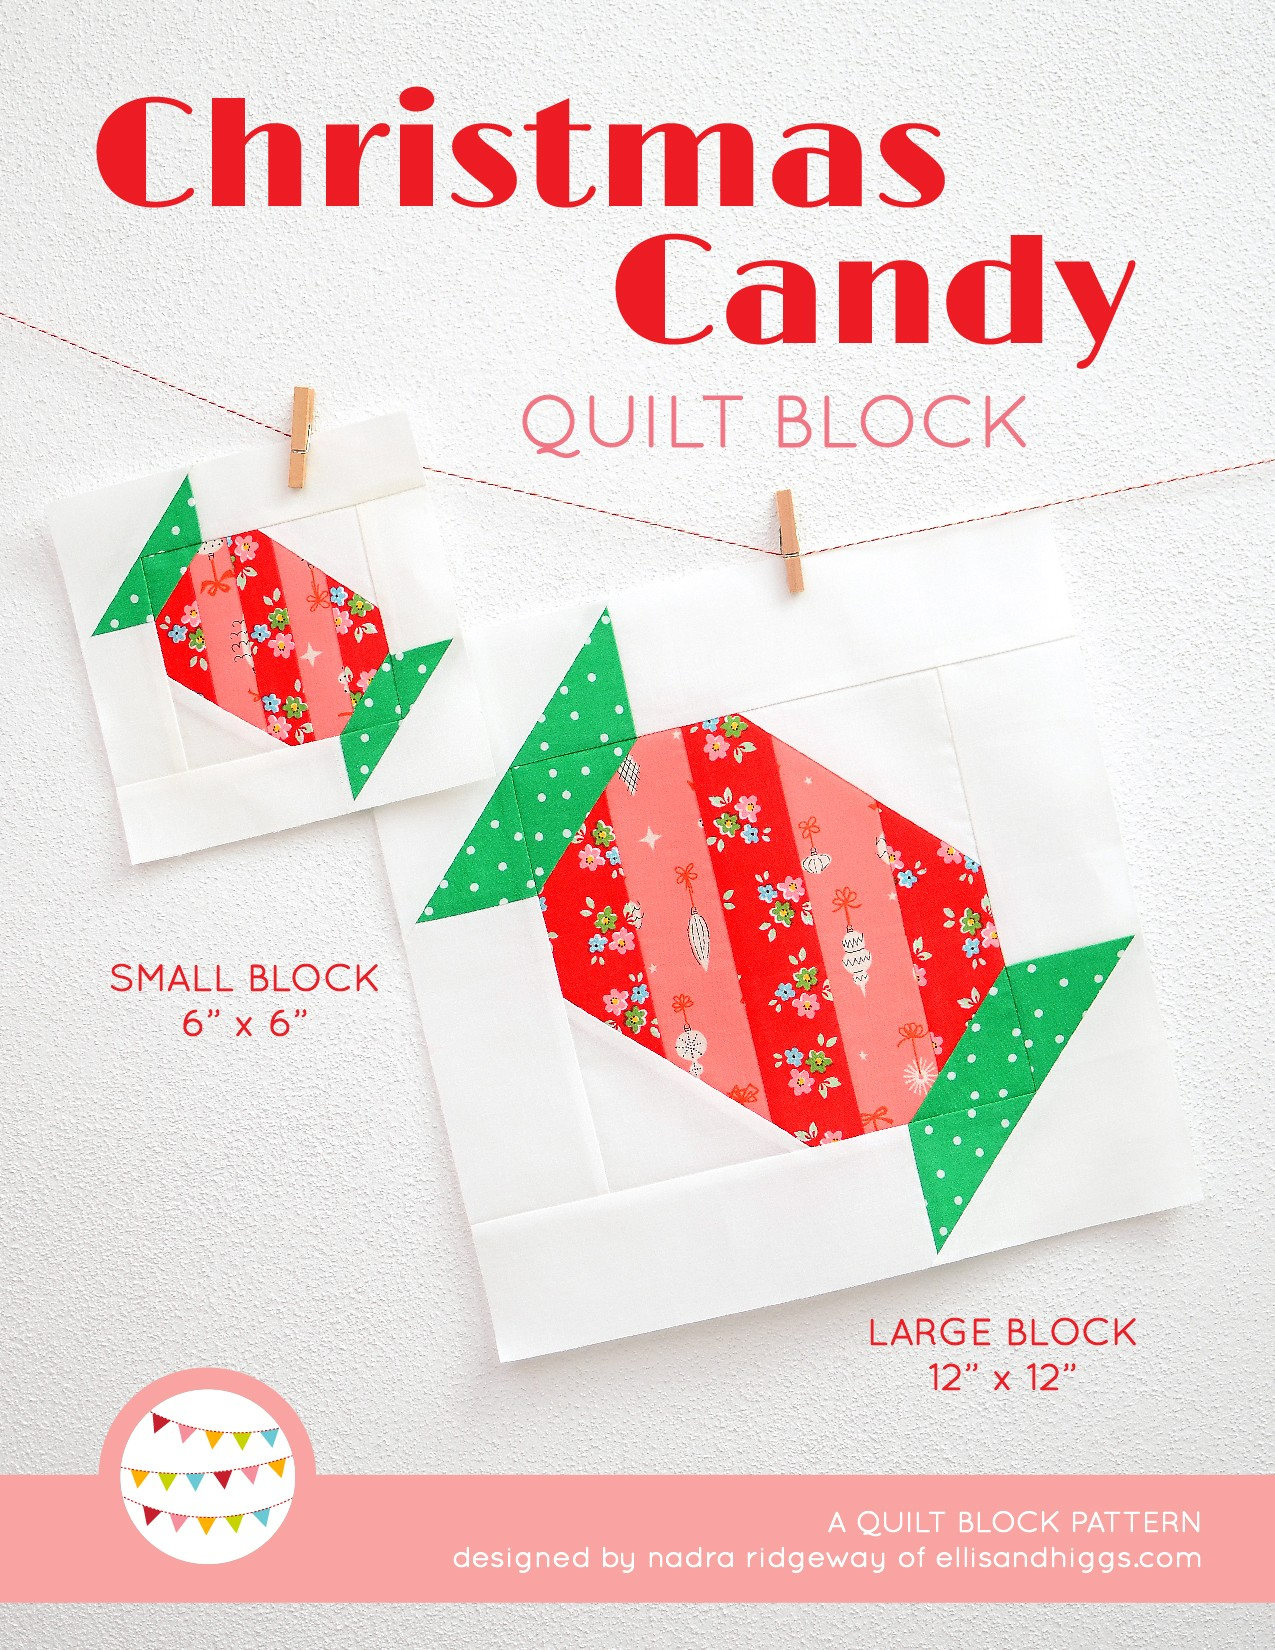 Candy quilt block in two sizes hanging on a wall - Christmas quilt pattern